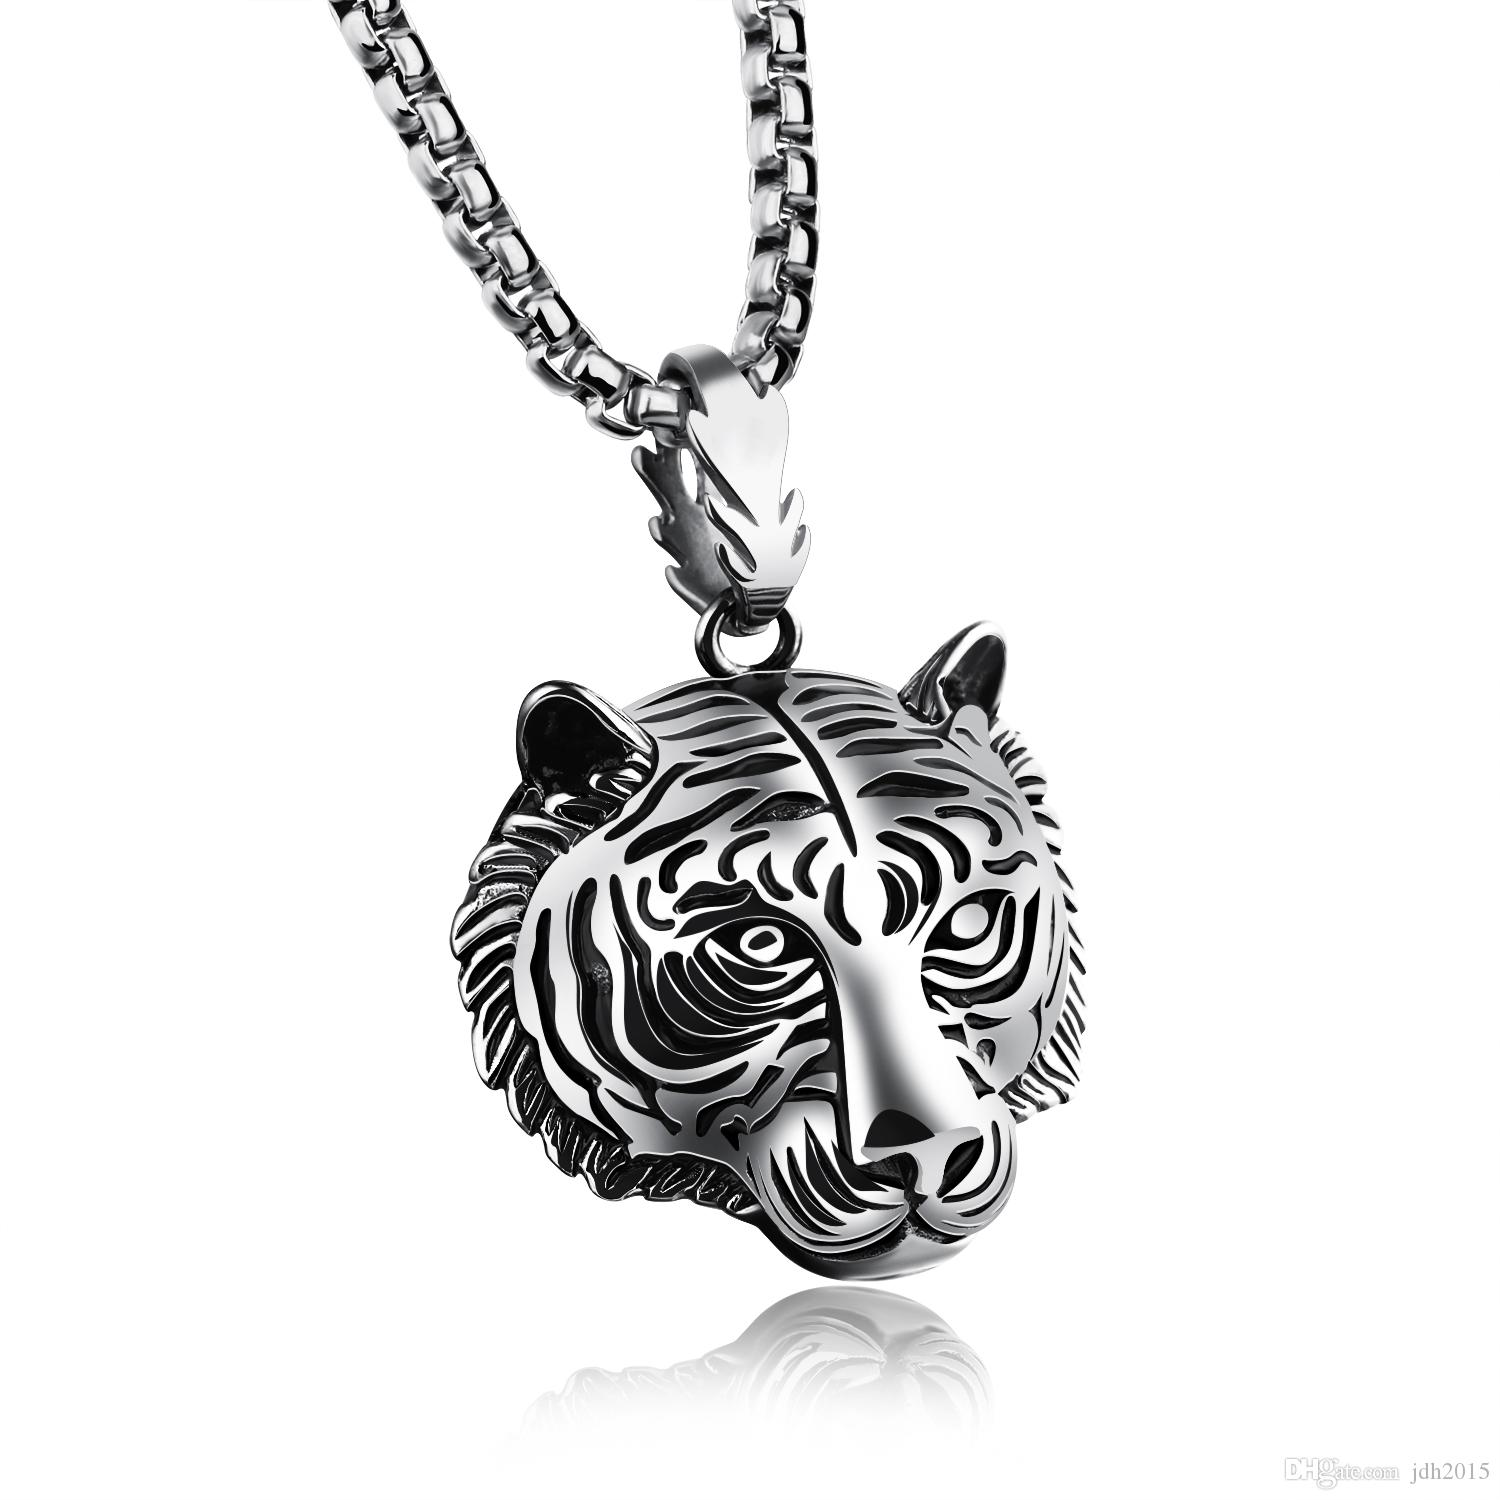 Hip Pop Stainless Steel Mens Tiger Head Pendant Necklace with 24 inches Chain